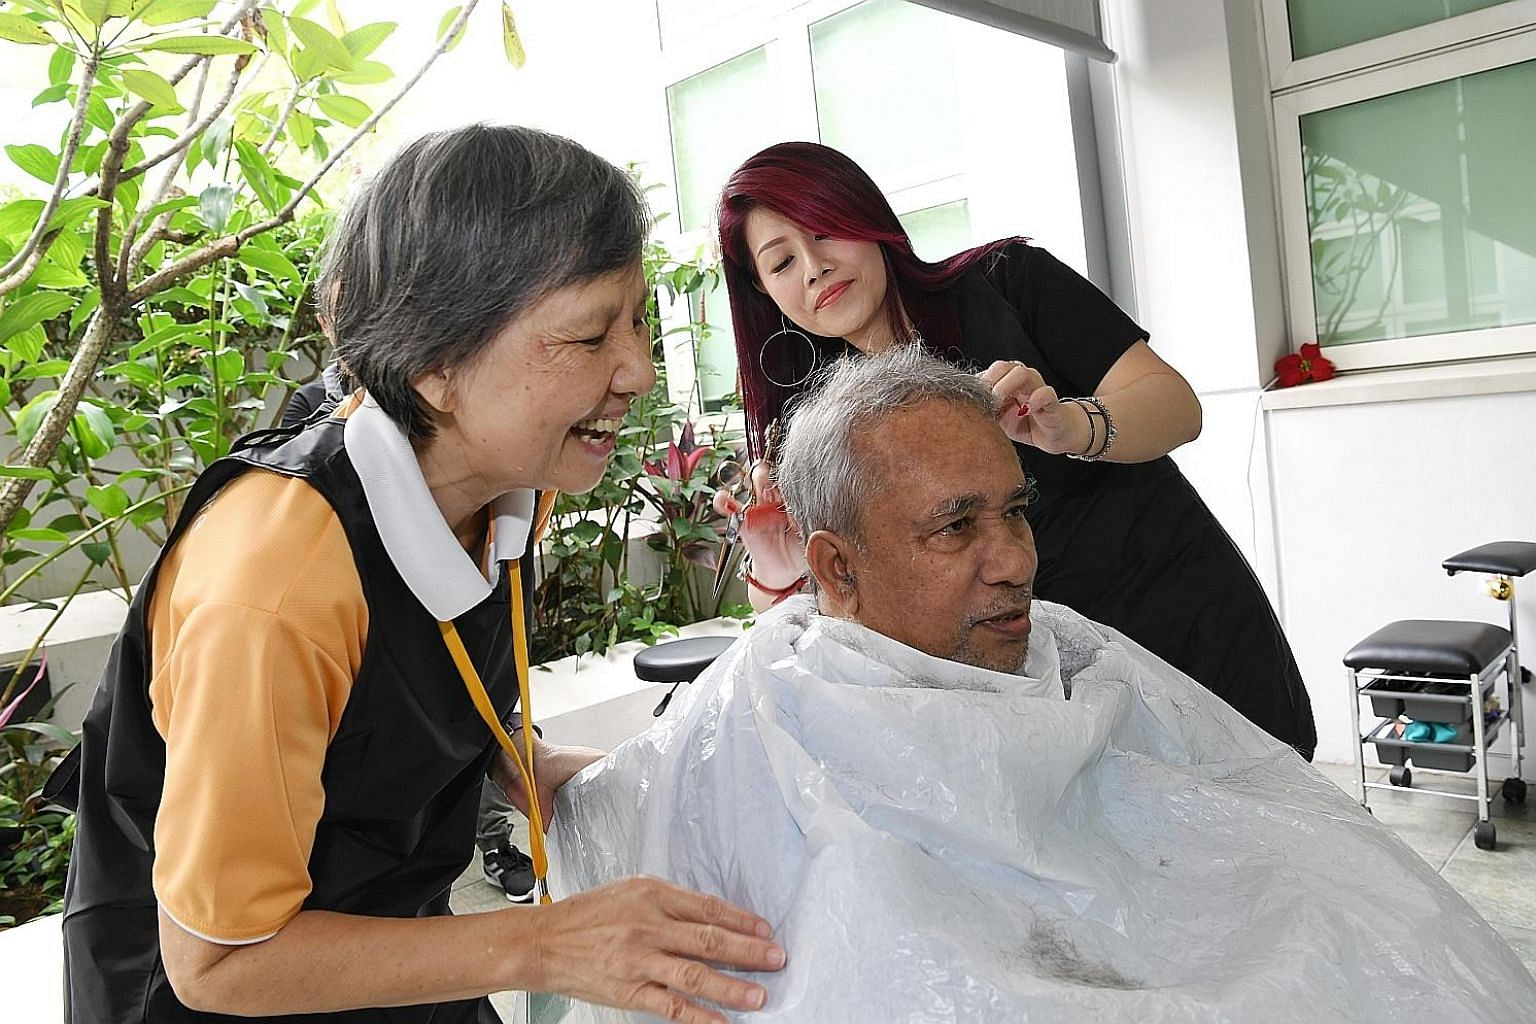 Volunteer Susan Law, 69, keeping patient Syed Mohammed, 66, entertained while hairstylist Doreen Liew, another volunteer, cuts his hair during the basic hair-cutting service for patients of Bright Vision Hospital. From next month, pop-up salons like